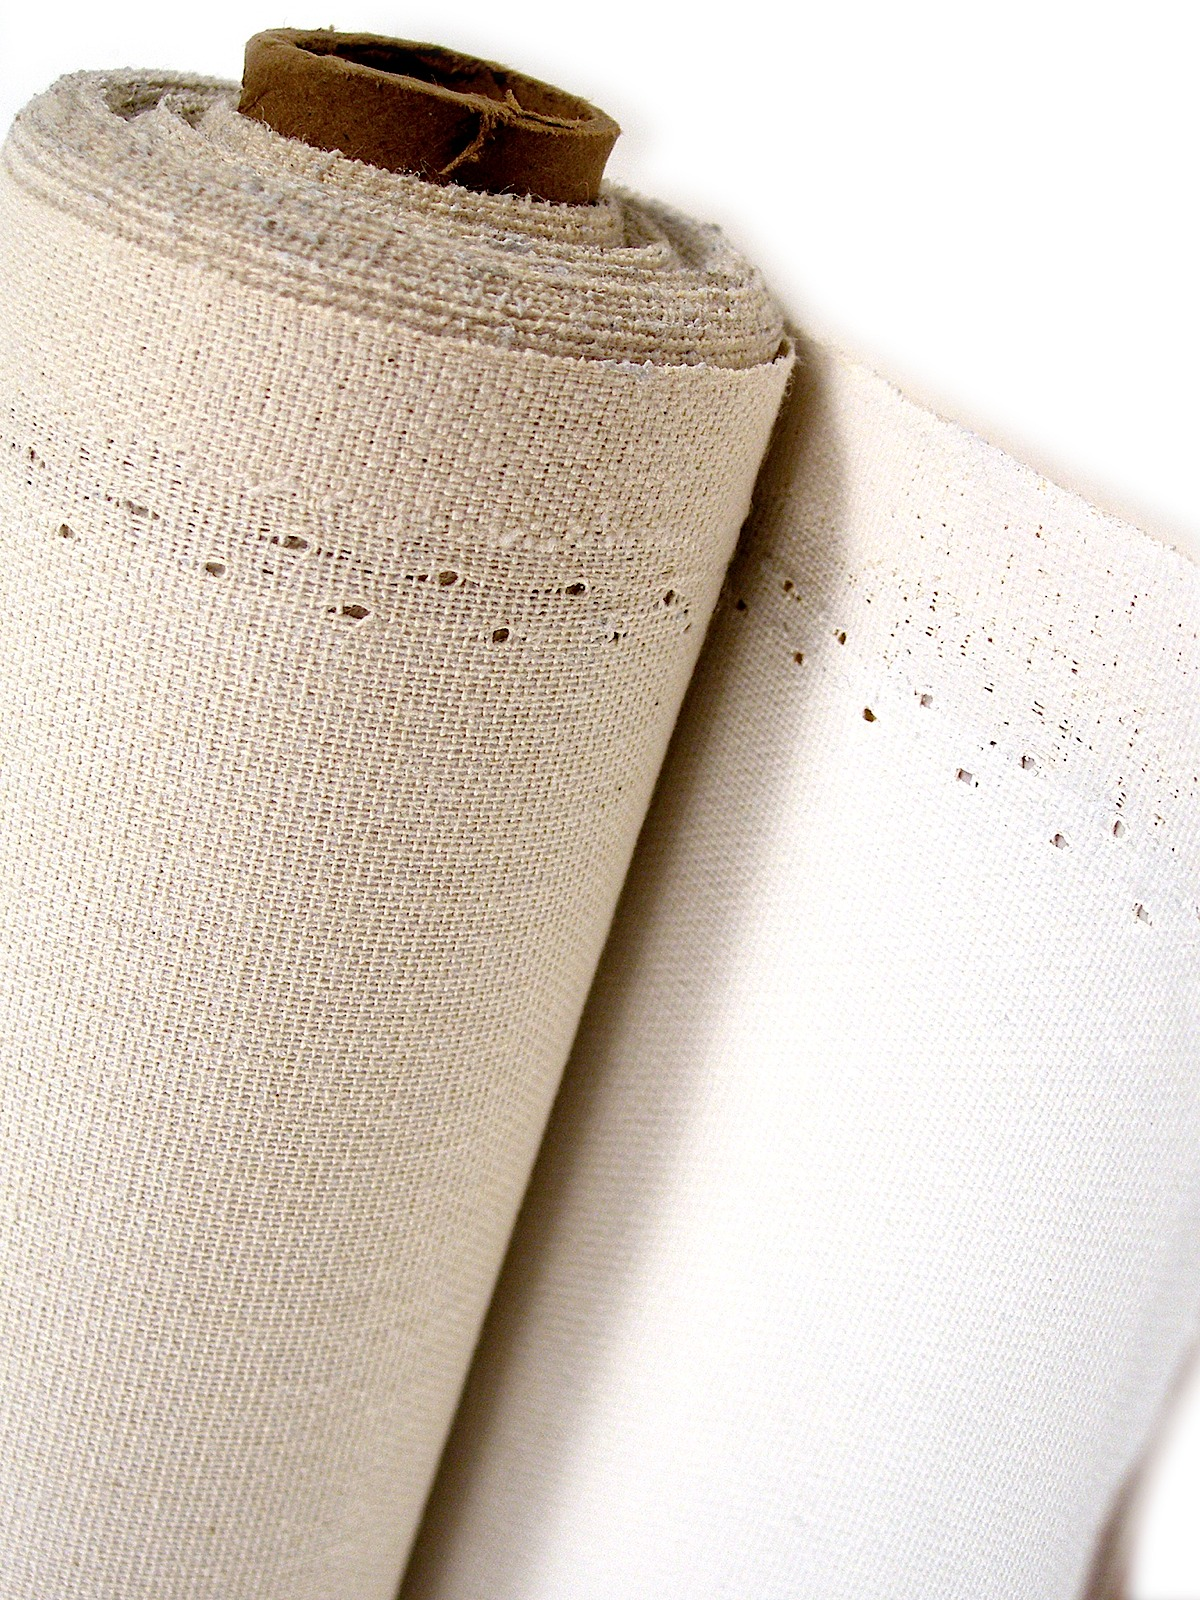 Fredrix alabama primed cotton canvas rolls for Canvas roll for painting